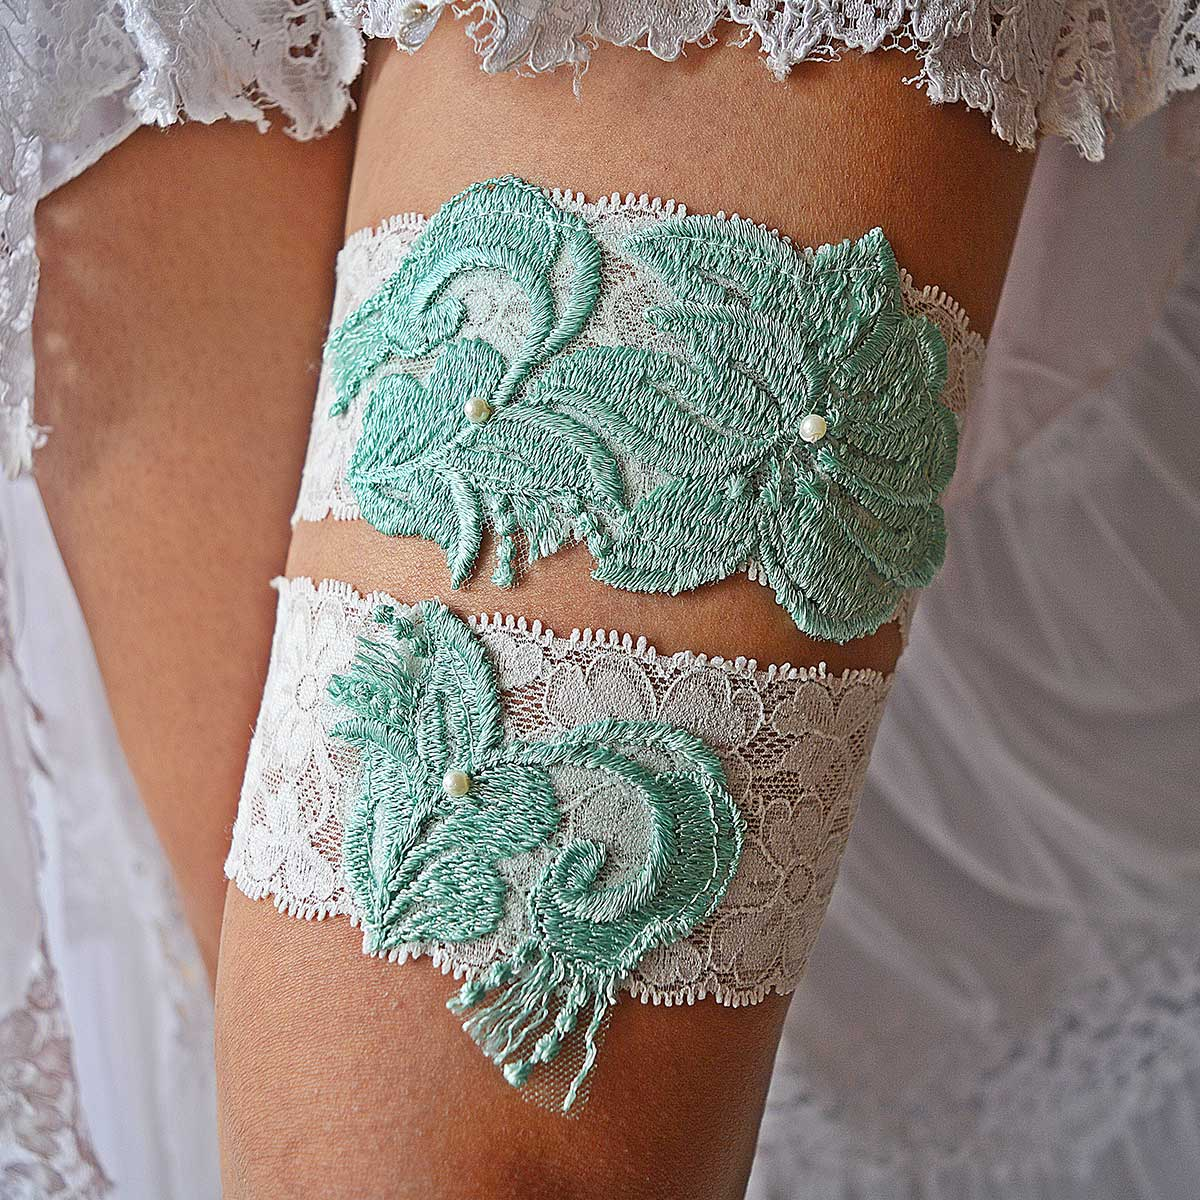 Ivory Bridal Garter With Mint Applique Lace And Ivory Pearls - Wedding Garter - SuzannaM Designs